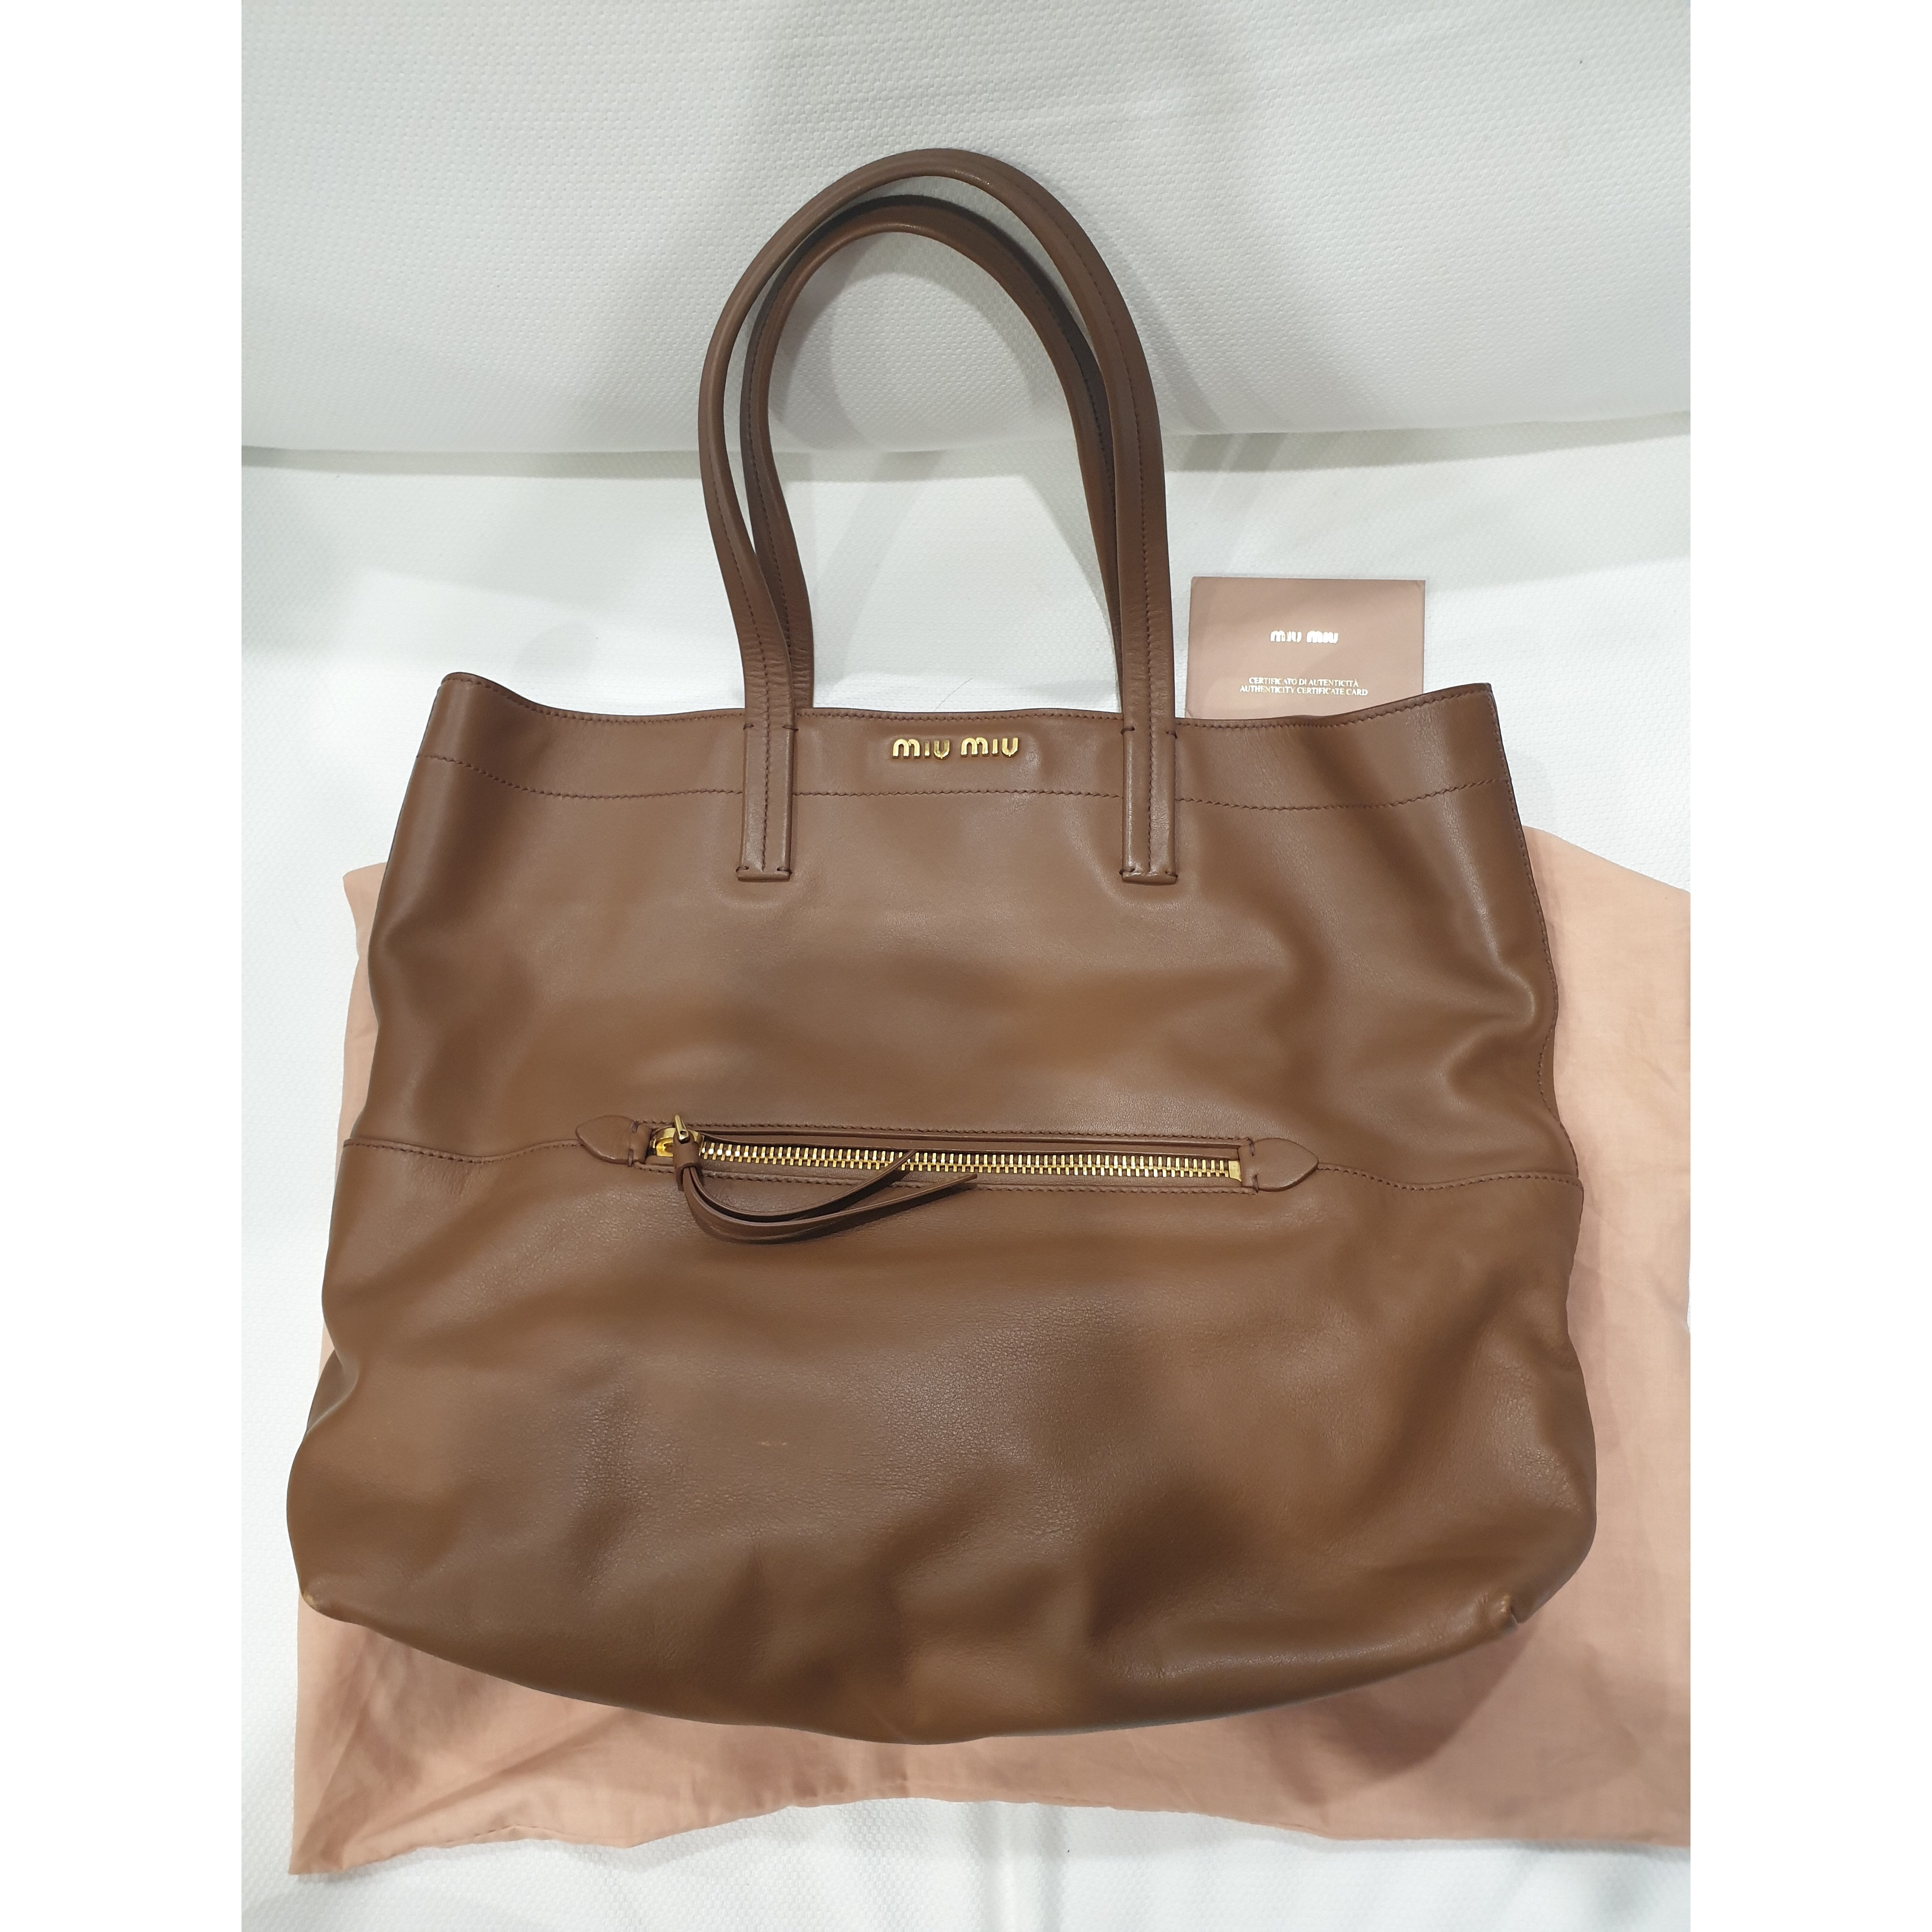 06c4bdc7938a Miu Miu Tote Condition   8 10 (minor scuff on corners) Color Material    Lambskin comes with dustbag and cards. Prefer cod so you can inspect the  bag prior ...